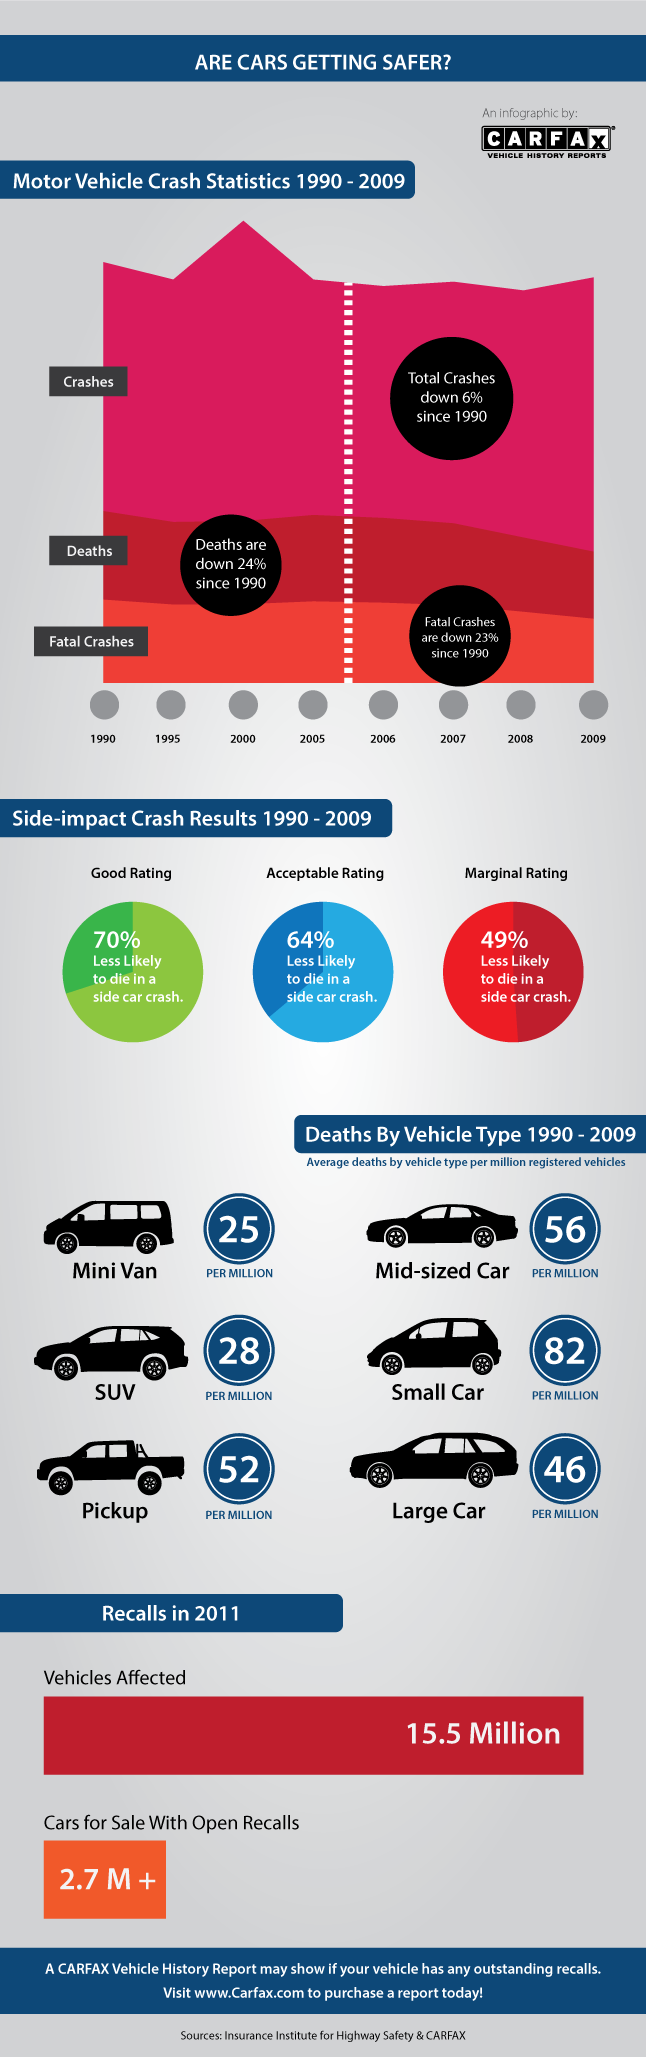 Are cars getting safer? (Infographic)